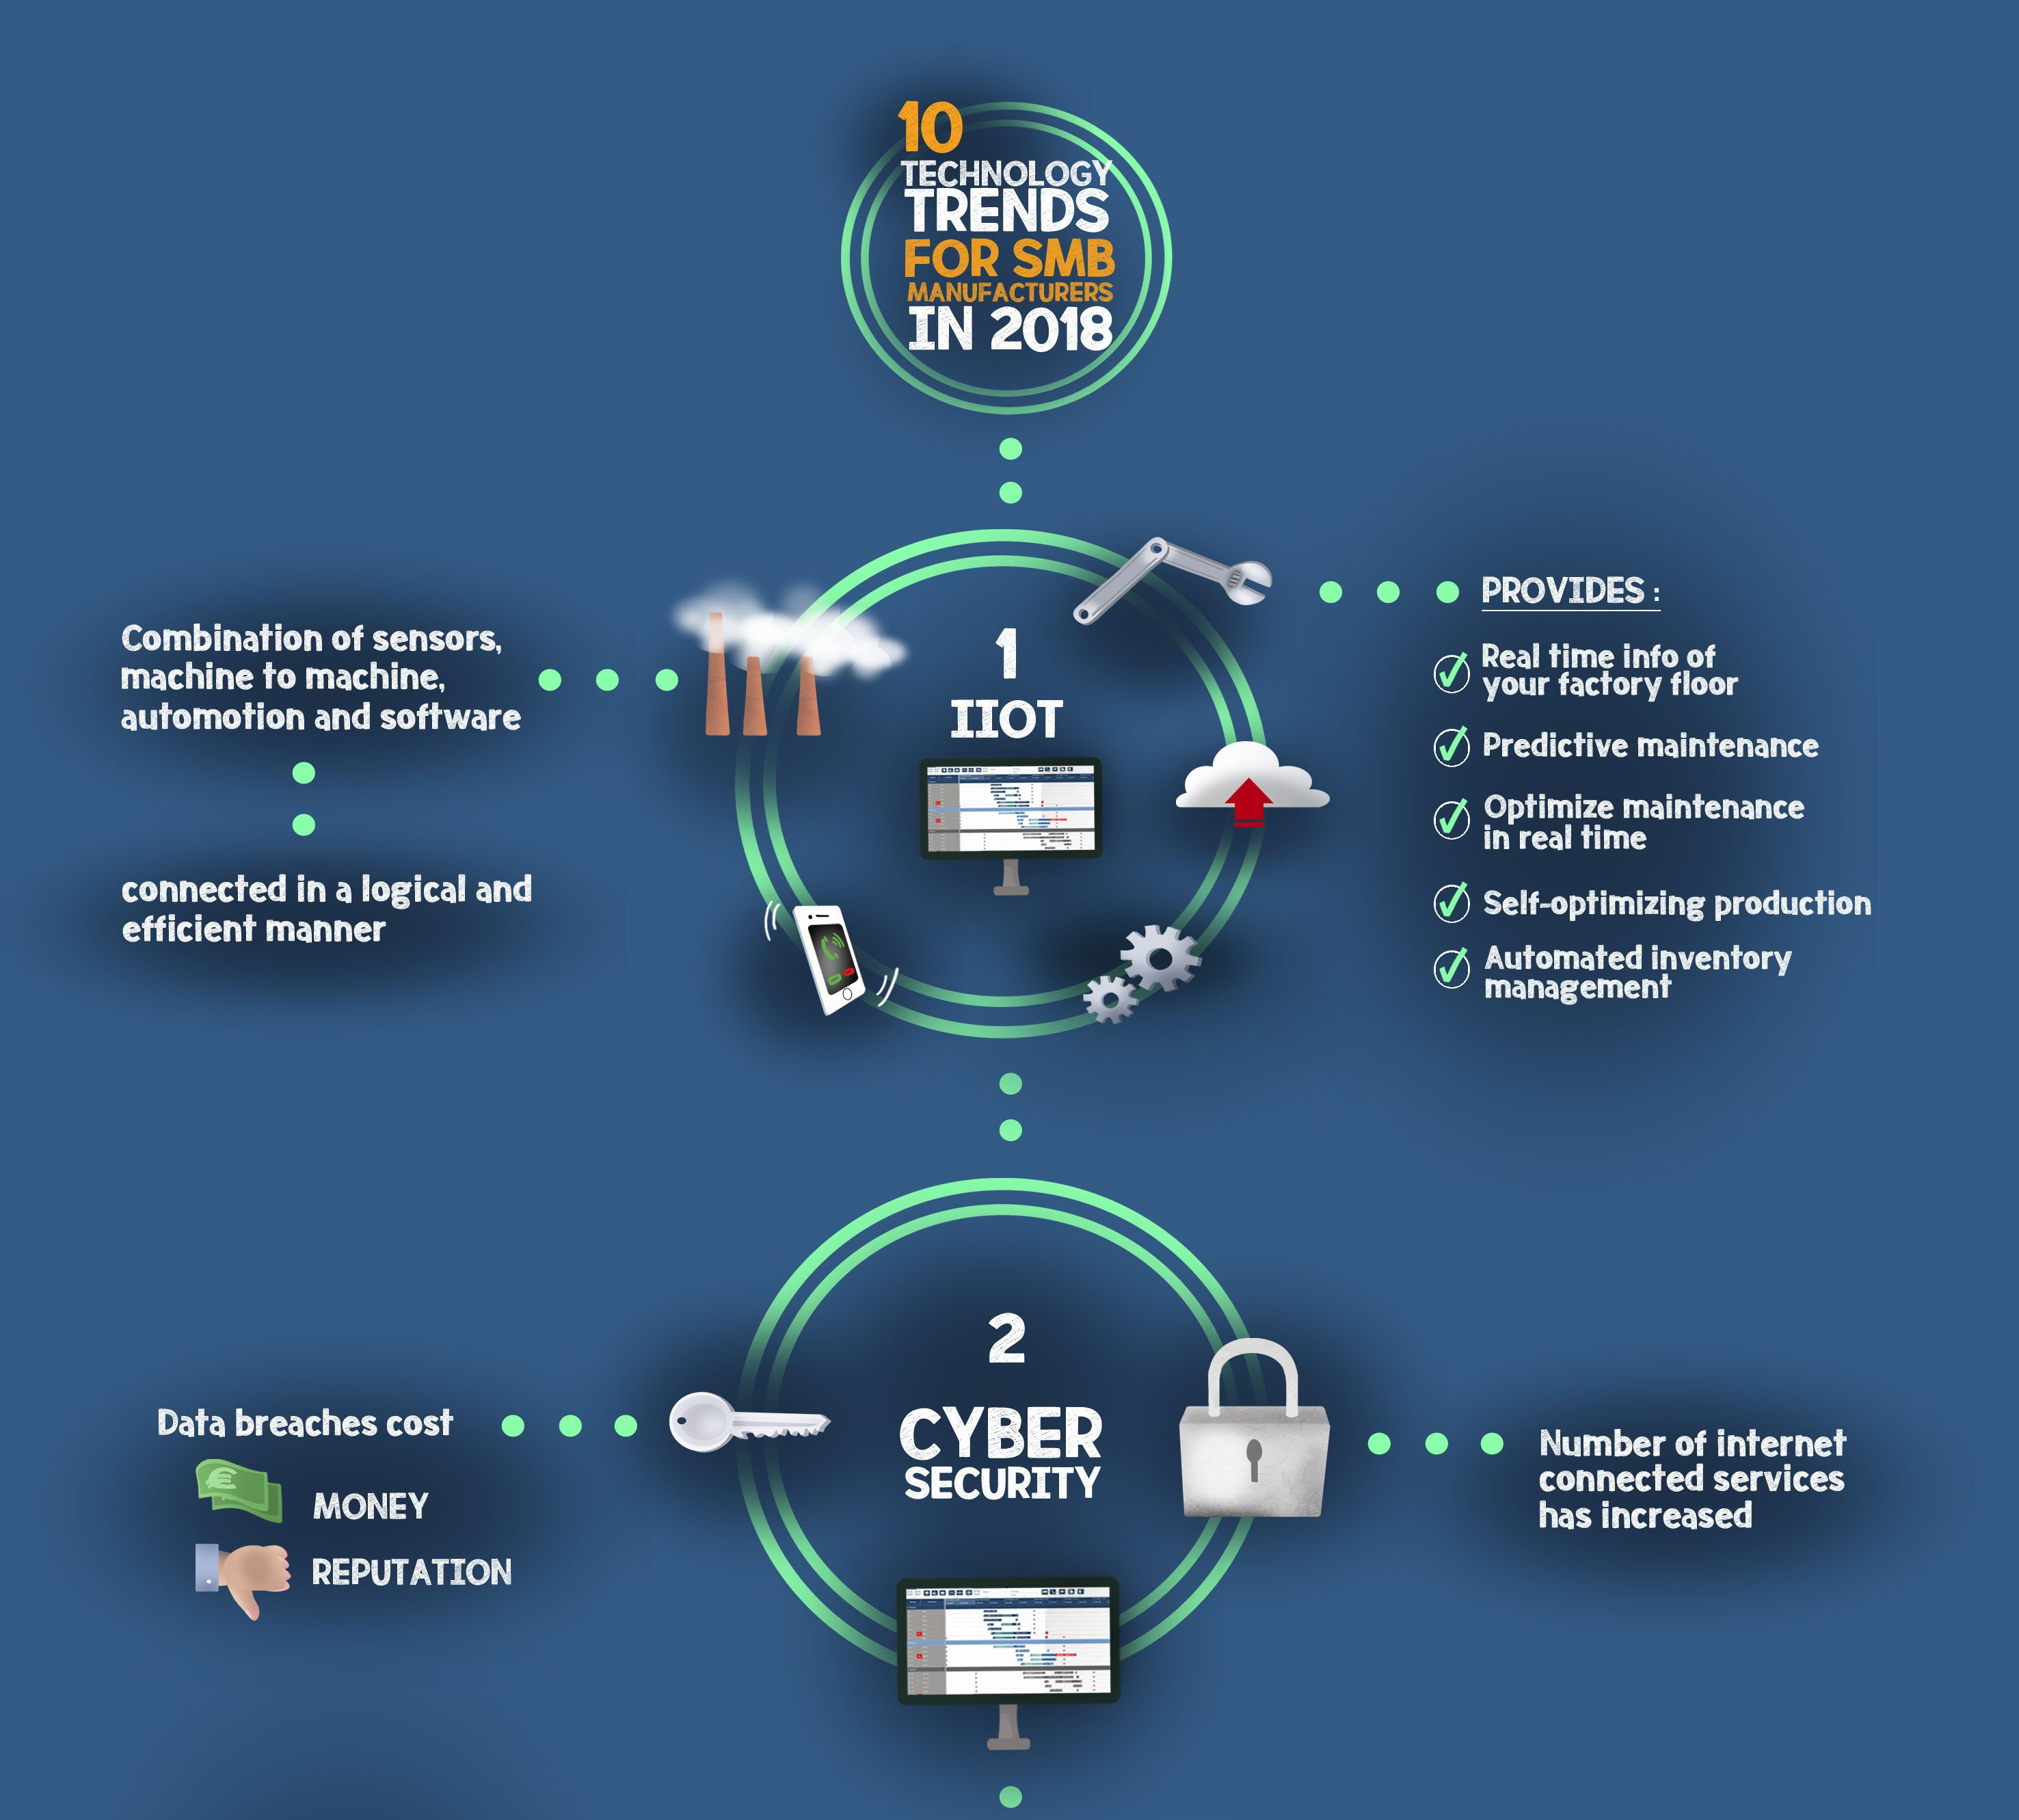 10 technology trends for SMB manufacturers in 2018 (infograph)